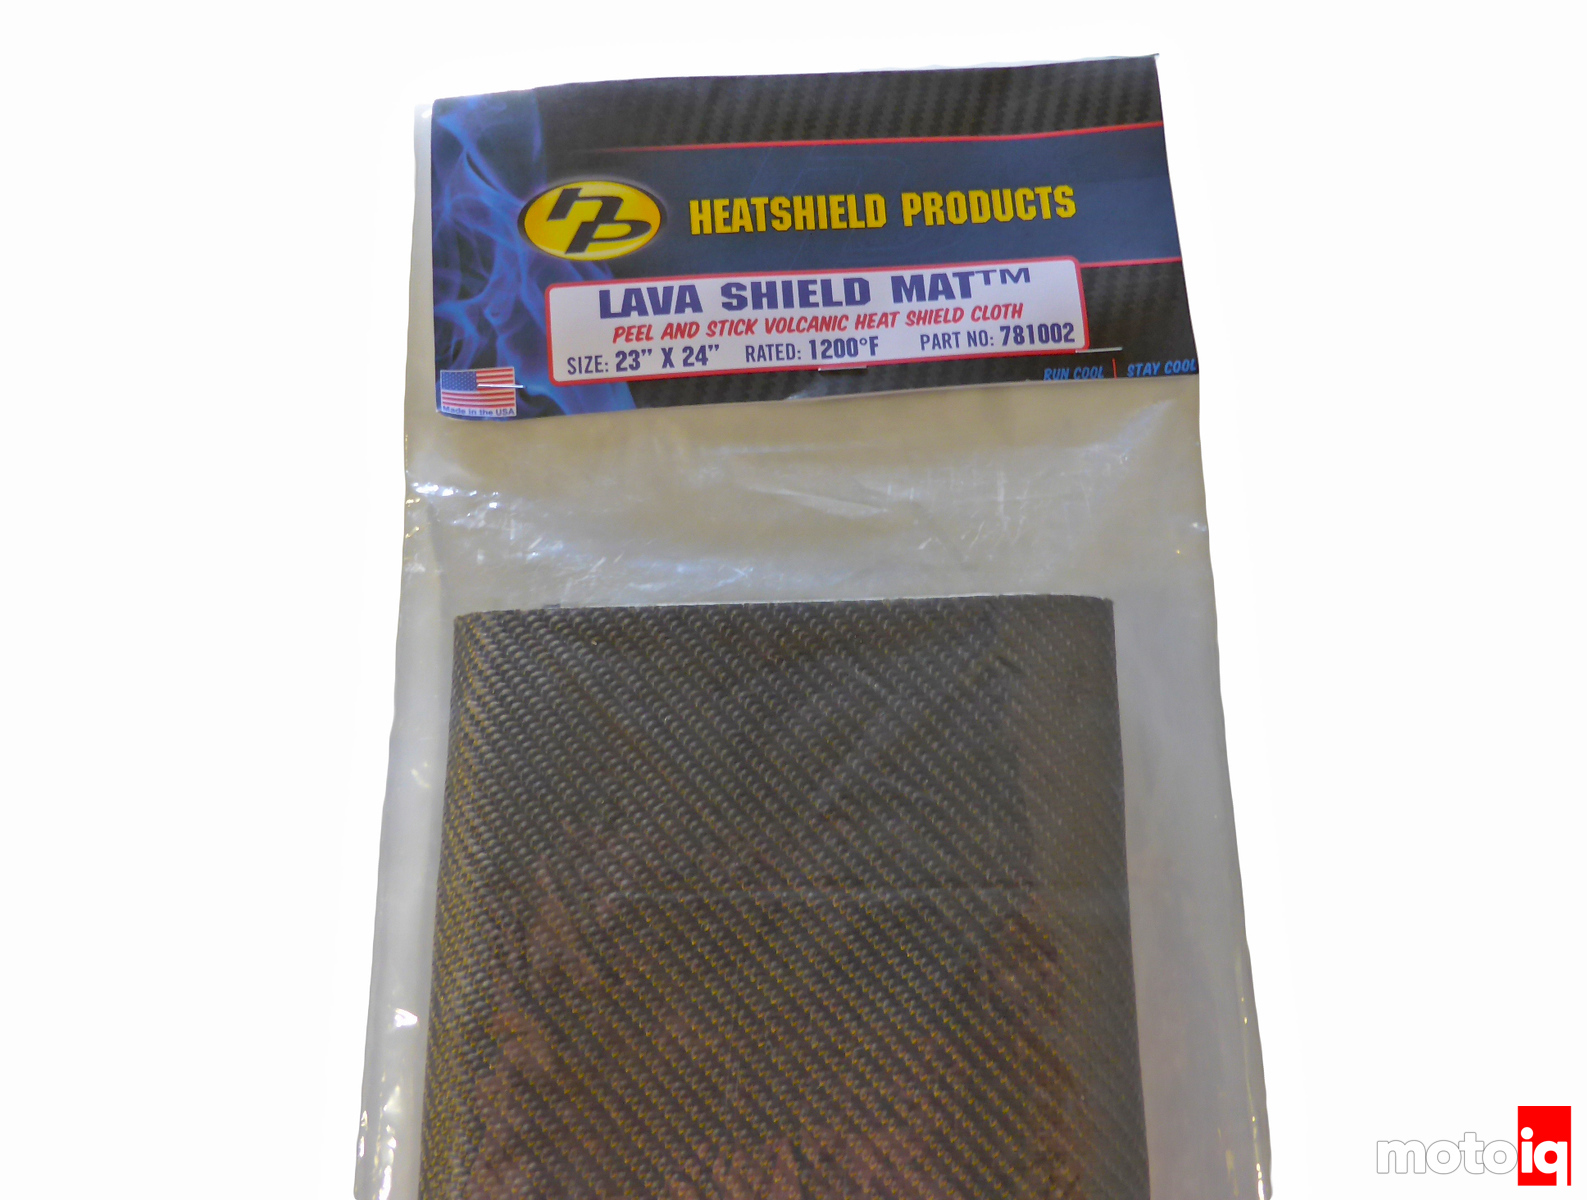 Heatshield Products Lavashield